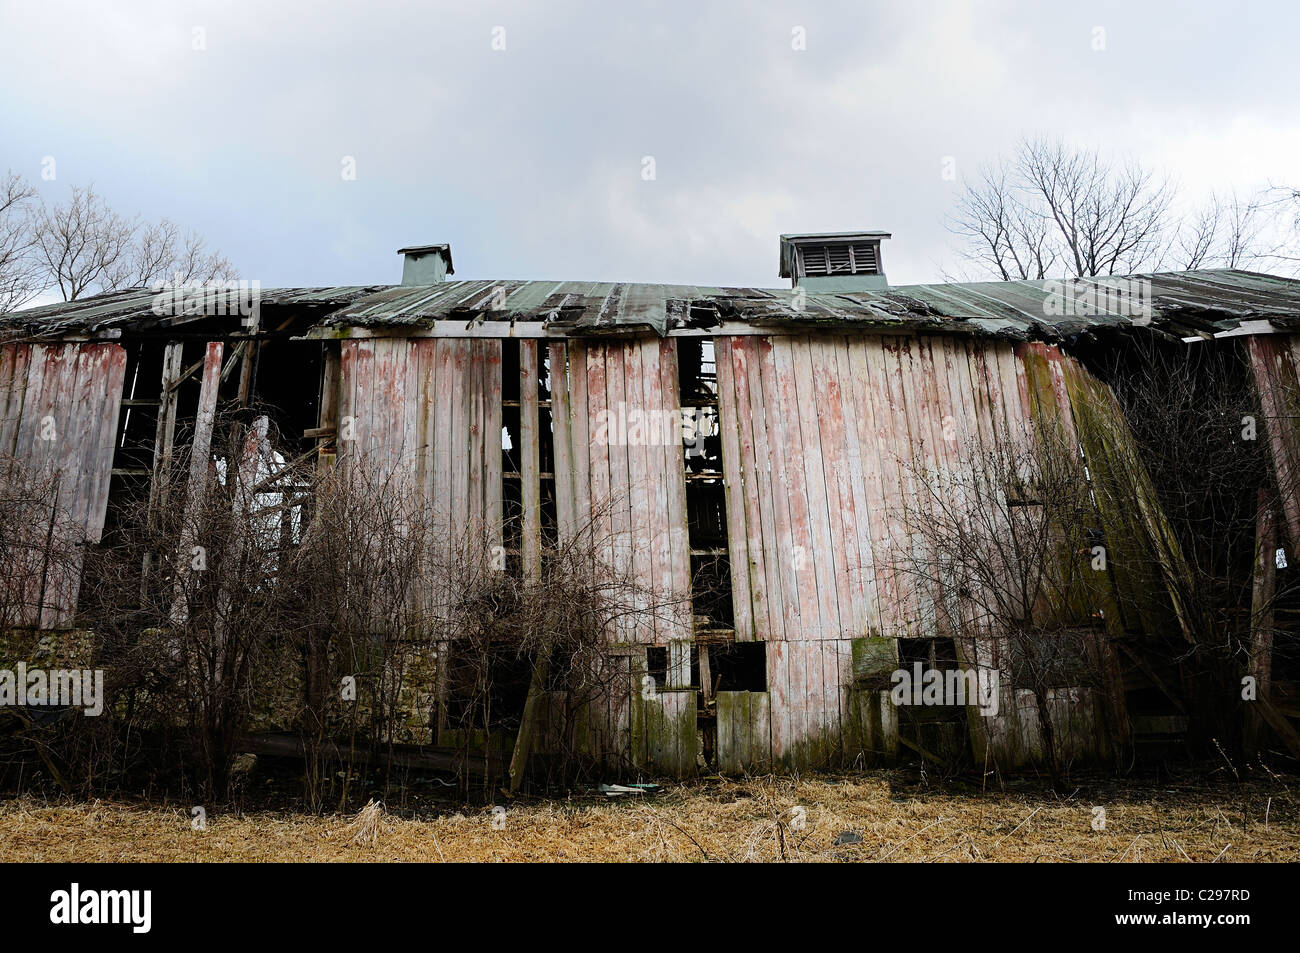 Decaying barn in Northern Illinois, USA. - Stock Image